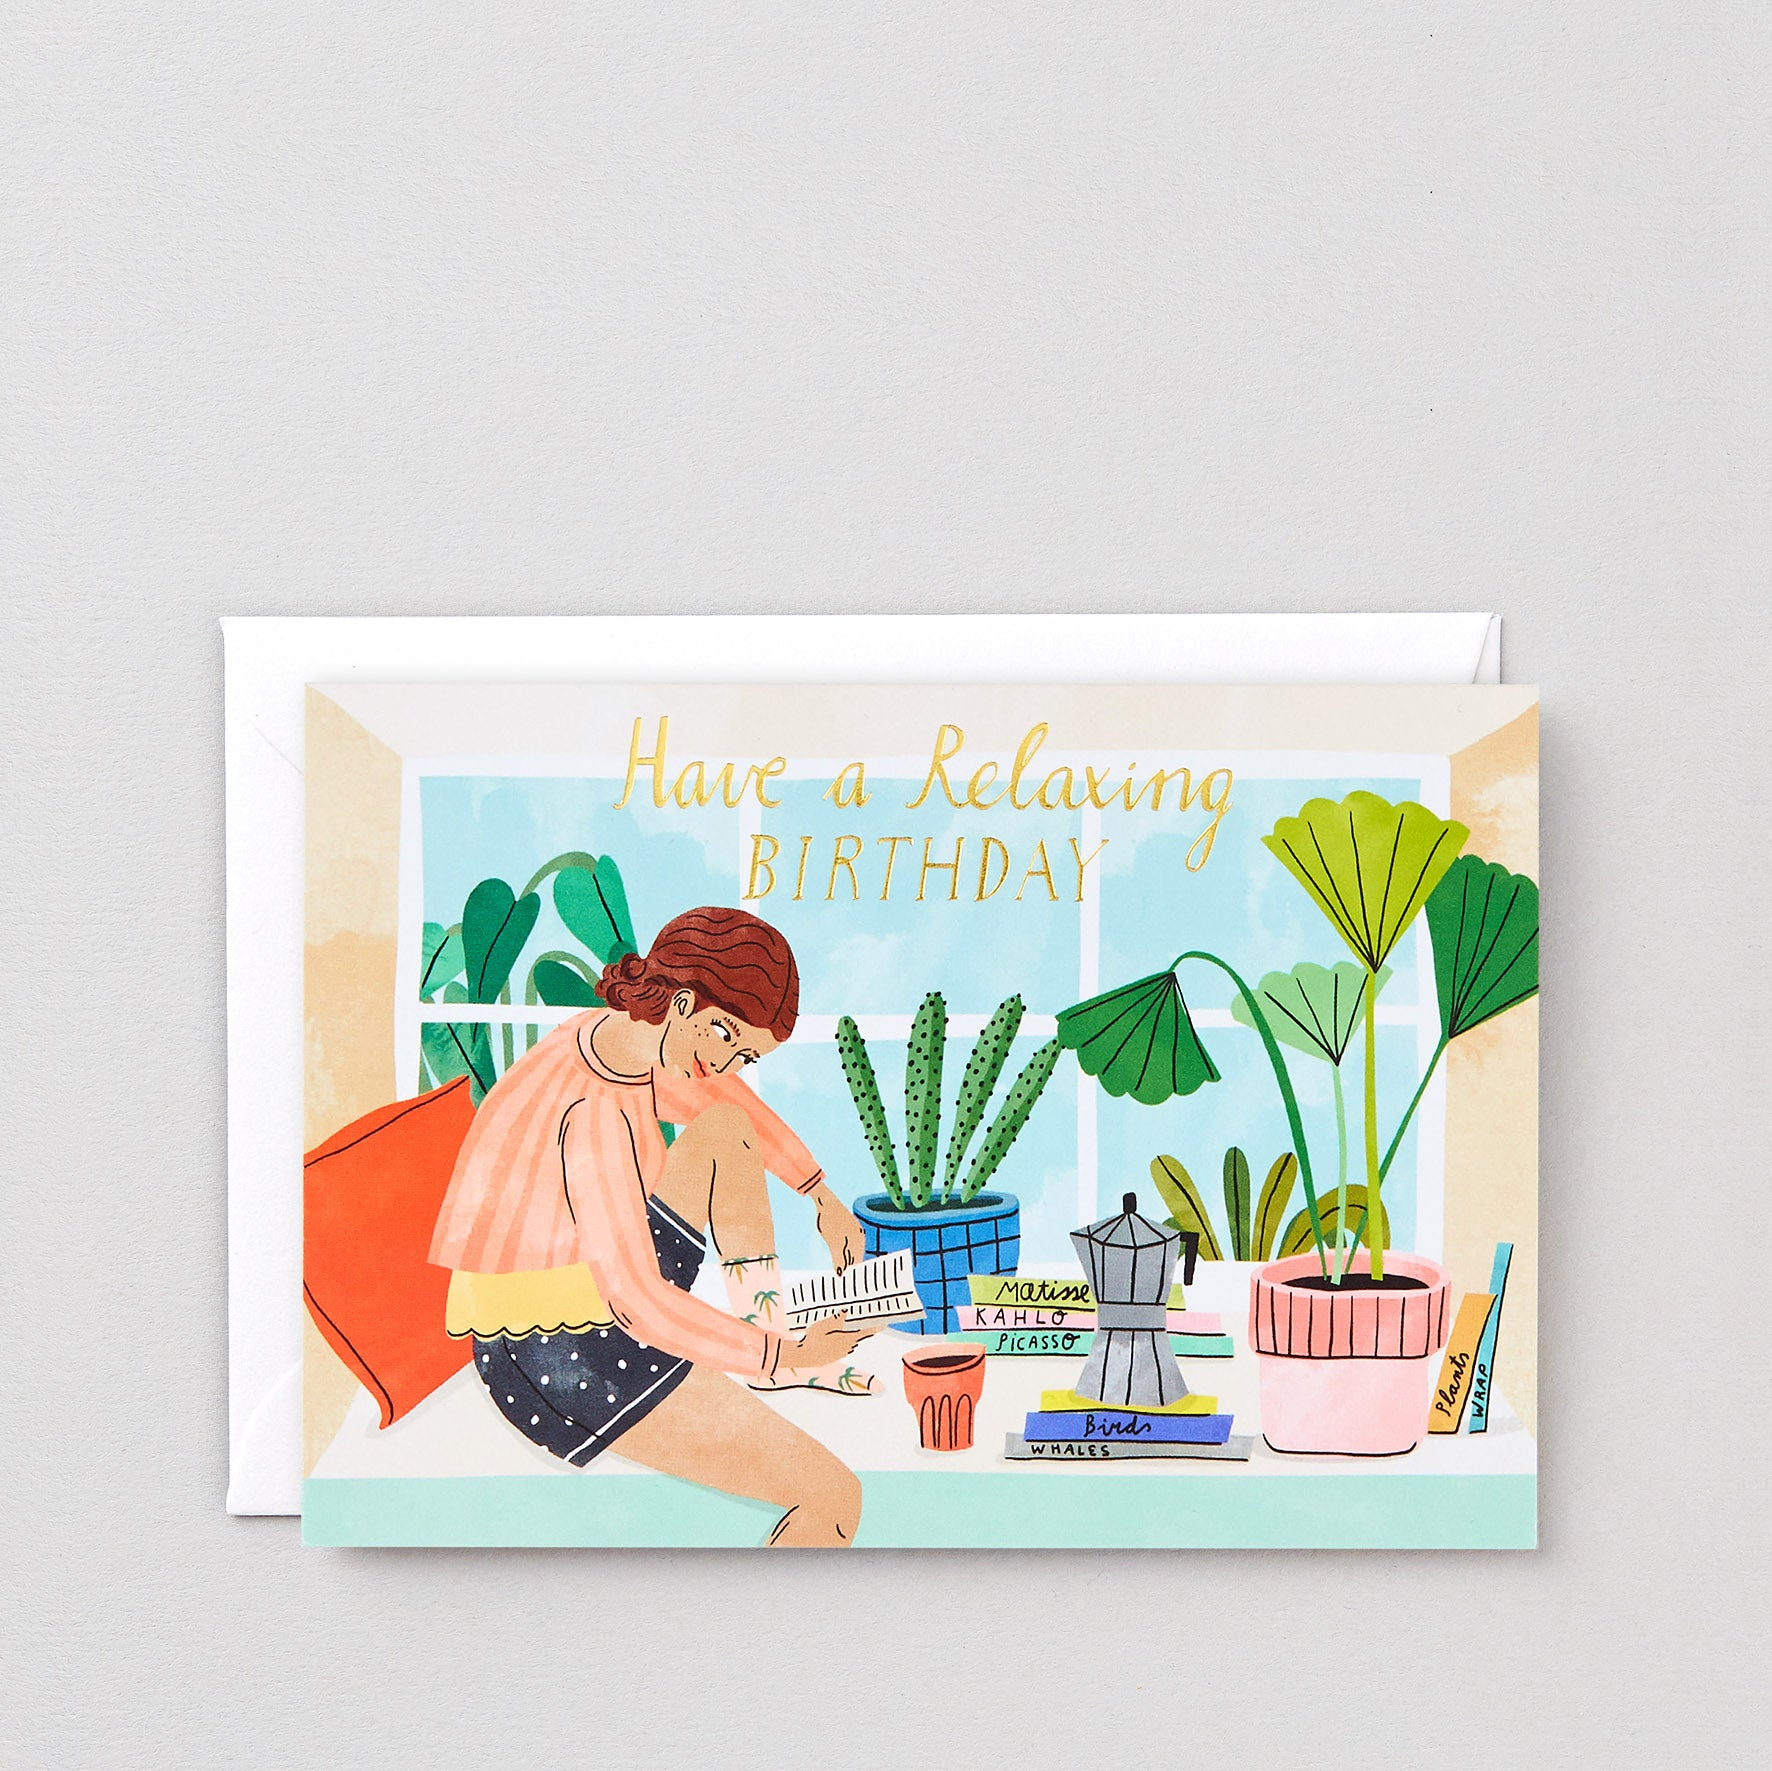 Birthday Card - Relaxing Birthday